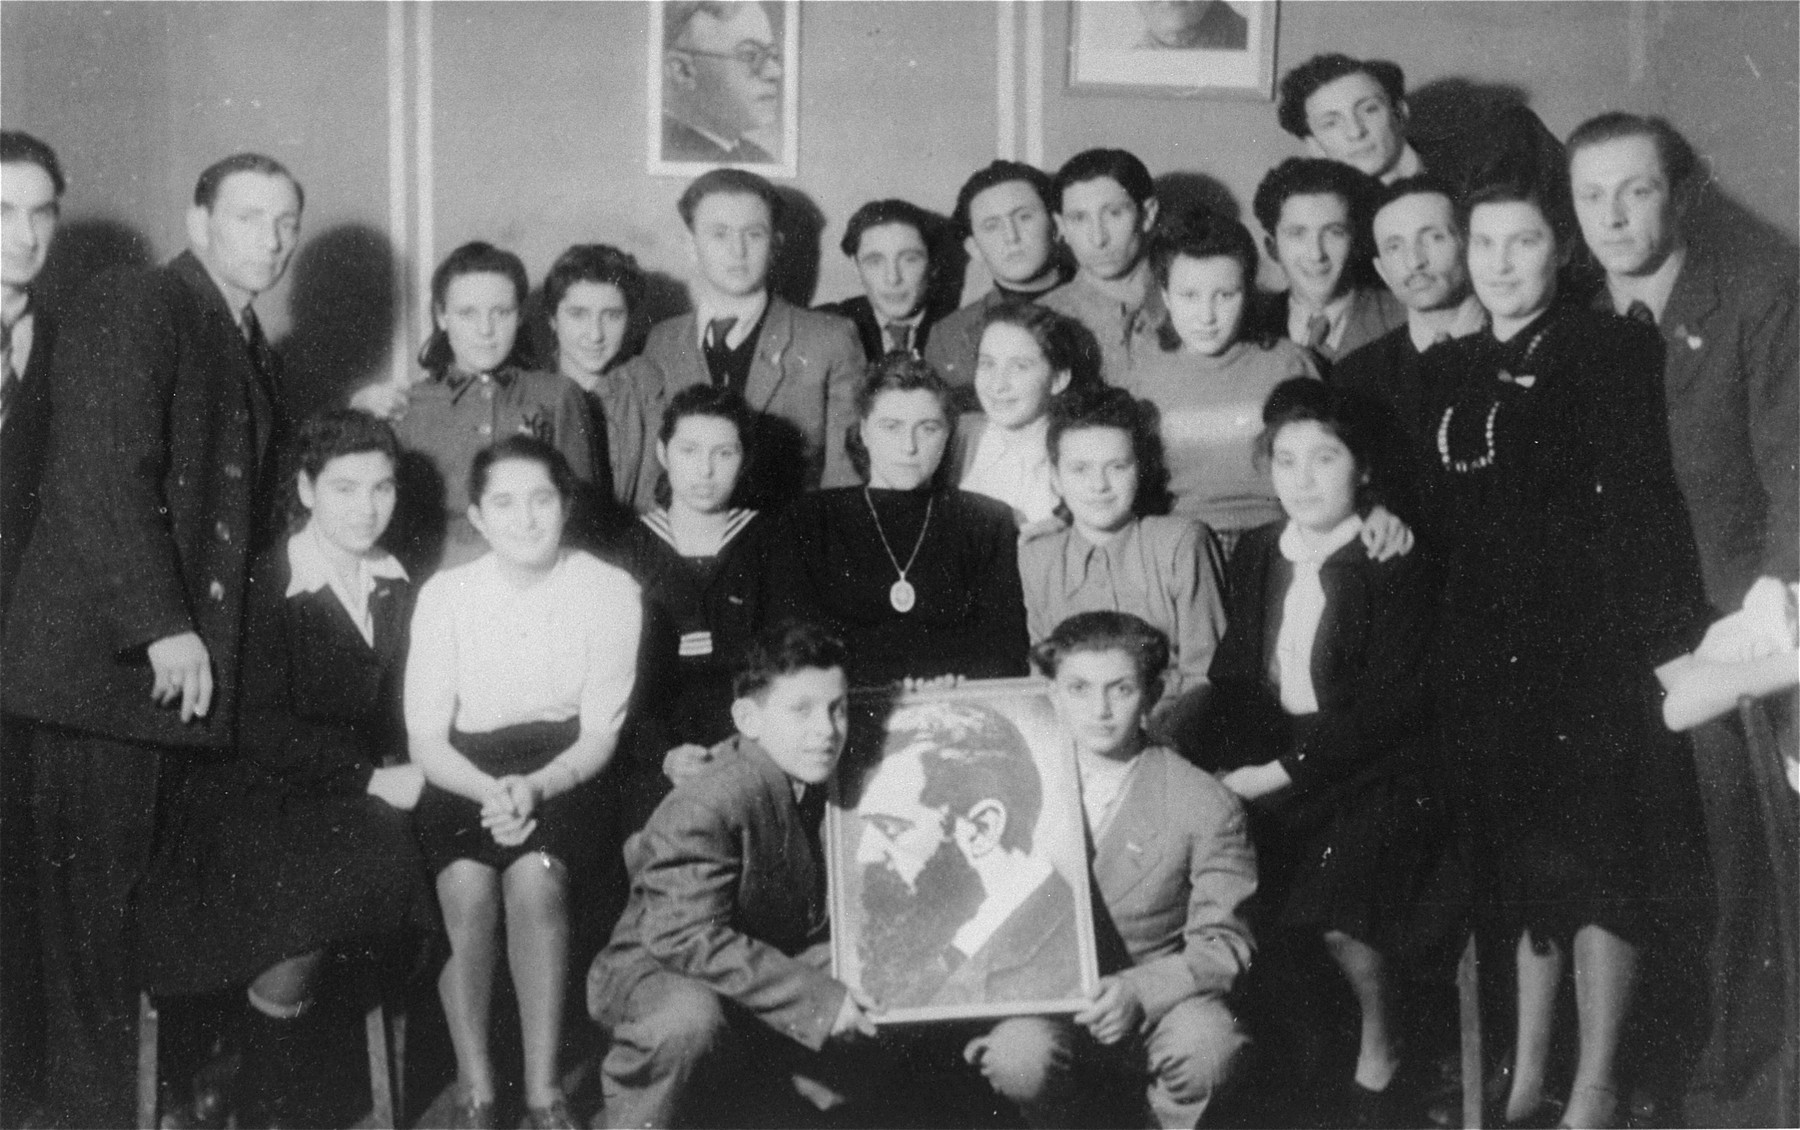 Members of Betar pose with a portrait of Theodor Herzl in the Schlachtensee displaced persons camp.    Pictured are the Zycer brothers, Icka Lewin, Mishka Gleiberman, Yurek Snyder, Leizer Snyder, and Murka Bimbad.